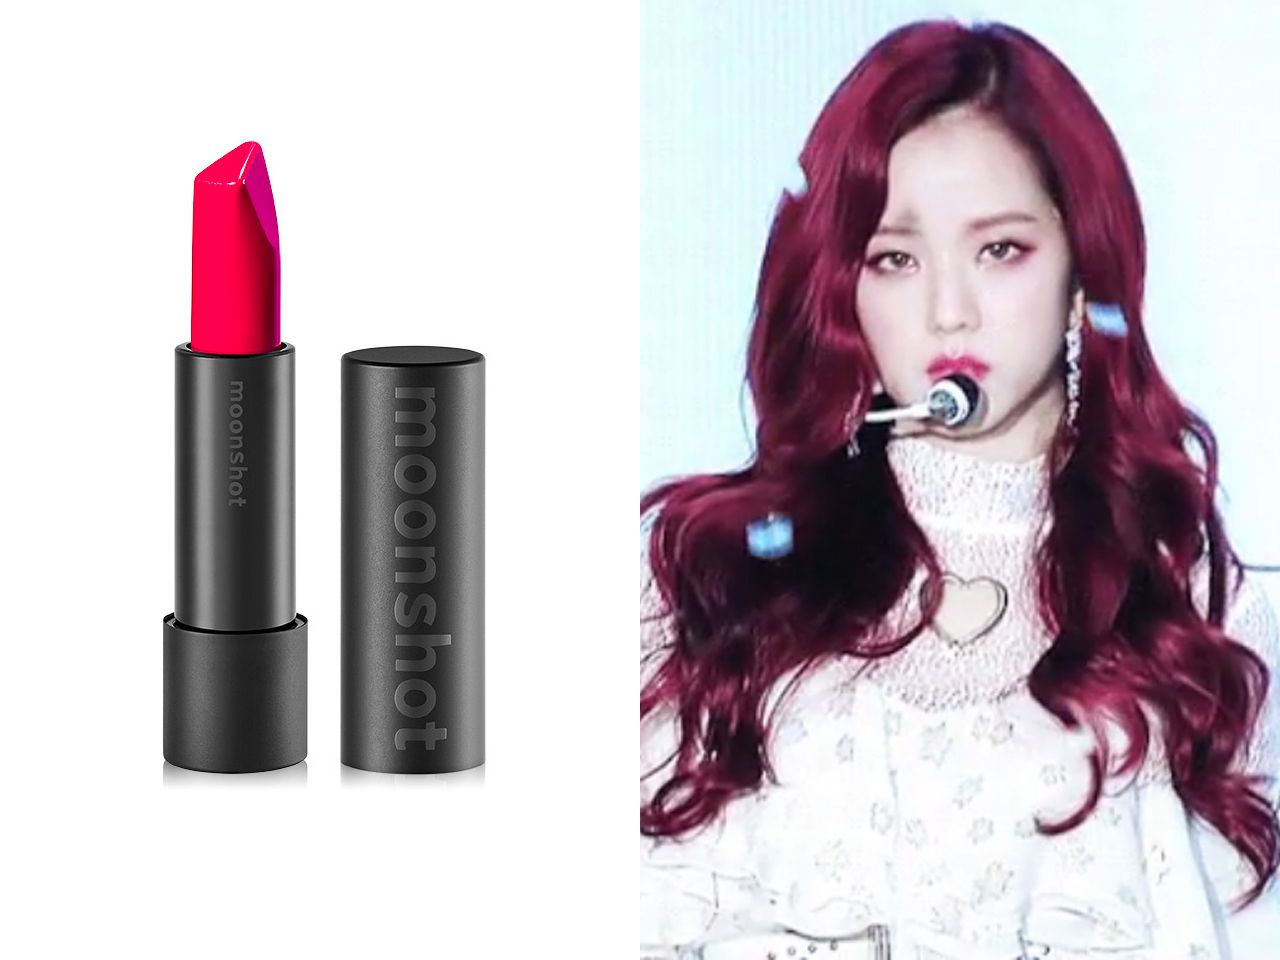 Lipstik Blackpink/Twice